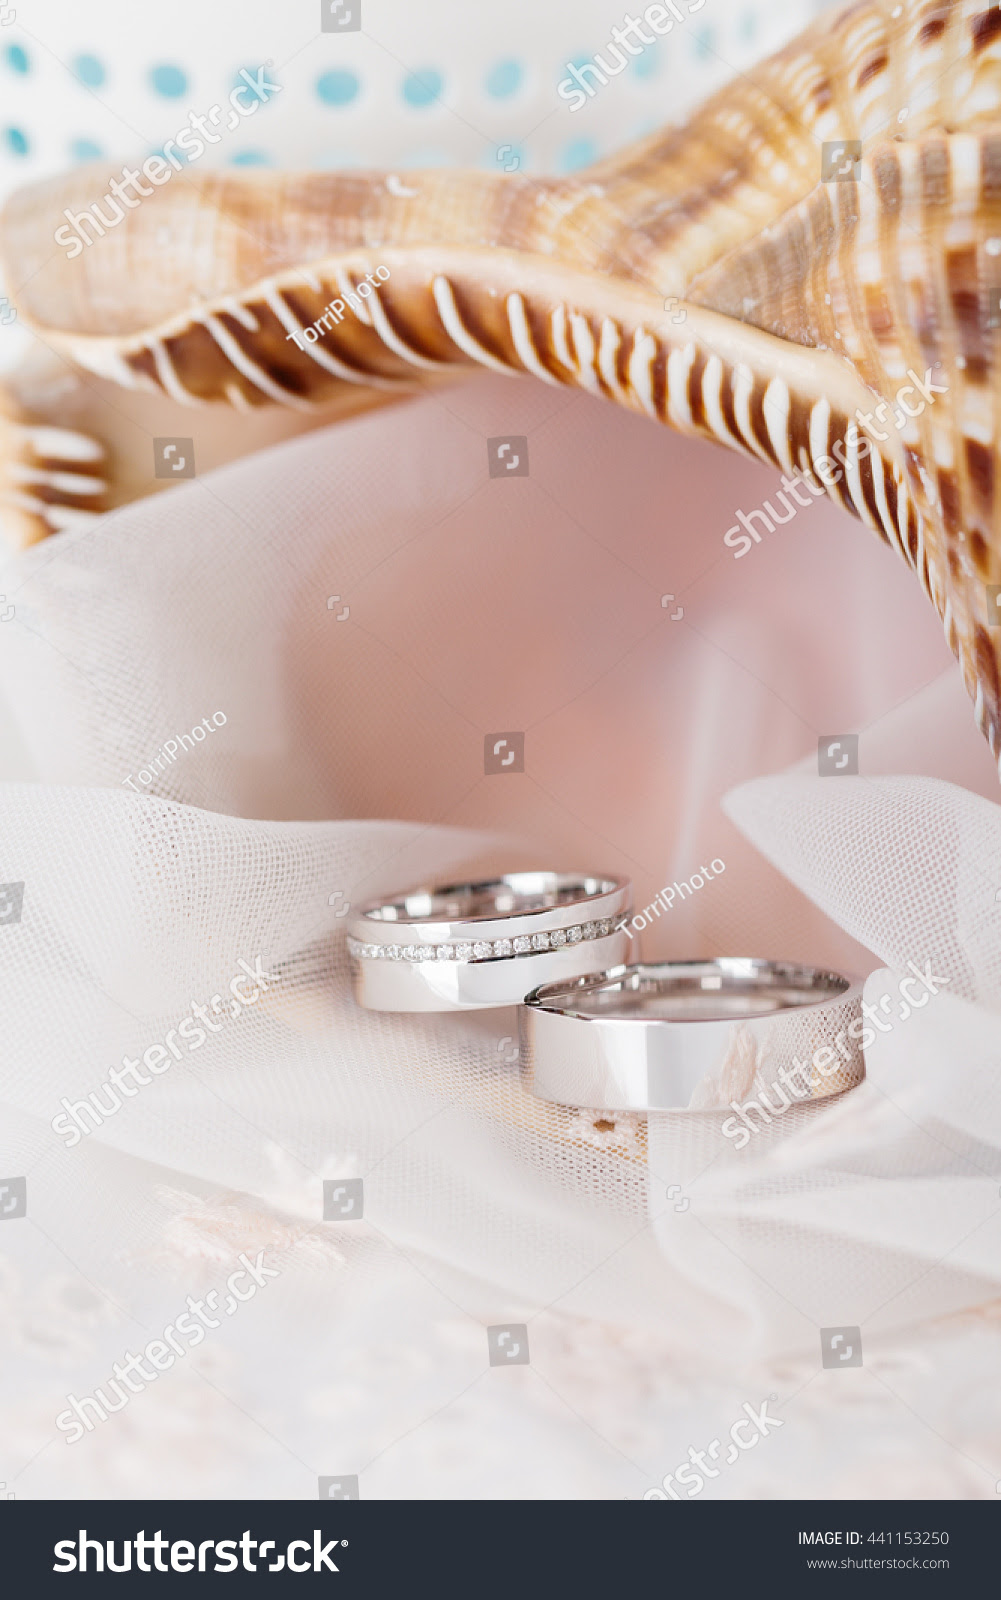 anniversary, background, beach, bridal, bride, celebration, ceremony, concept, couple, diamond, engagement, focus, gem, gold, golden, groom, holiday, husband, idea, invitation, jewelery, jewelry, journey, lace, love, macro, marriage, marry, metal, nobody, pair, proposal, resort, rings, romance, romantic, satin, sea, seashell, season, shallow, shiny, silver, summer, symbol, travel, two, wedding, white, wife